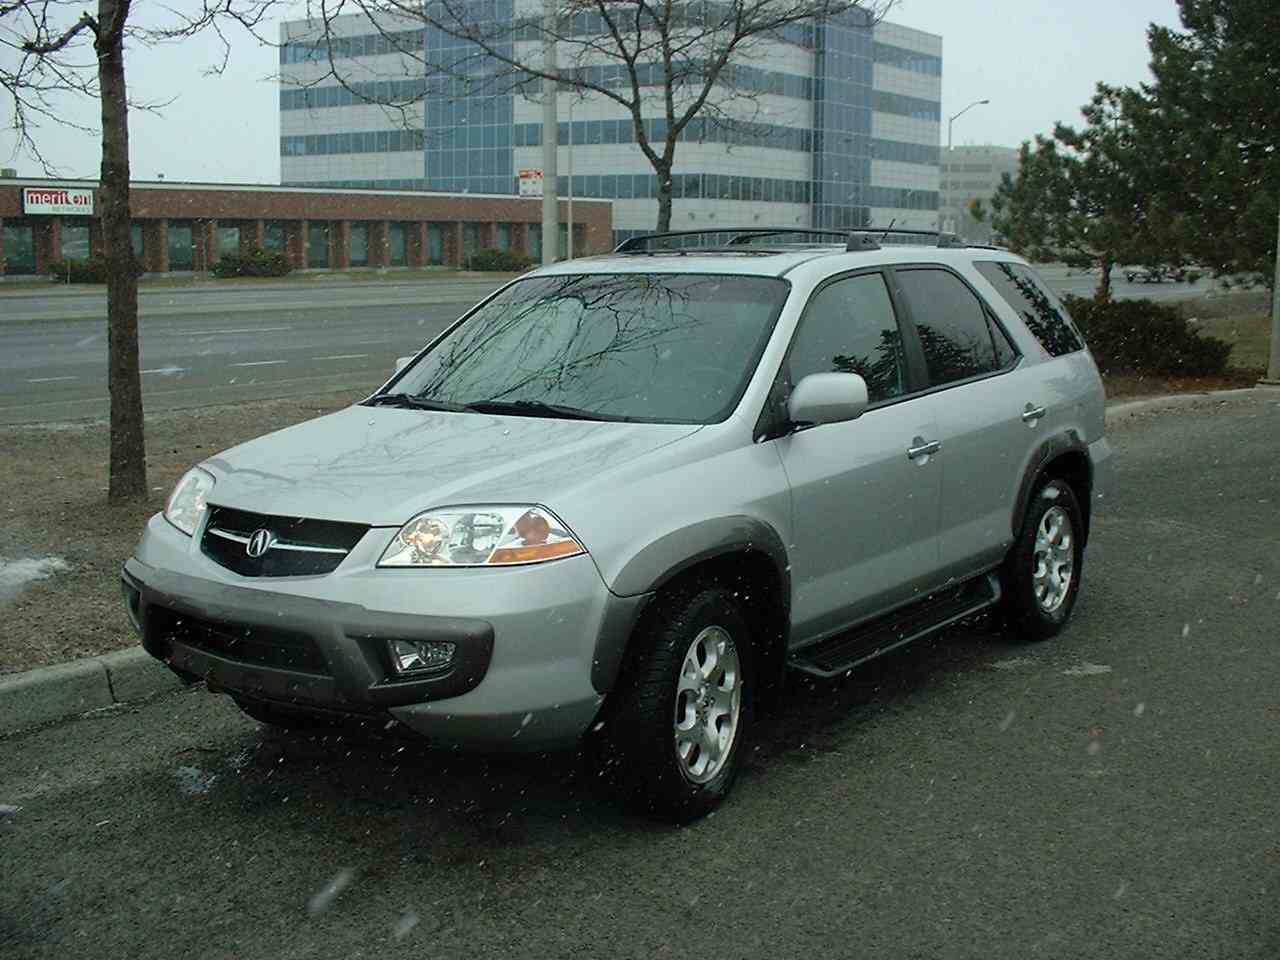 acura view llc cars az inventory mdx used sales phoenix sale american for auto